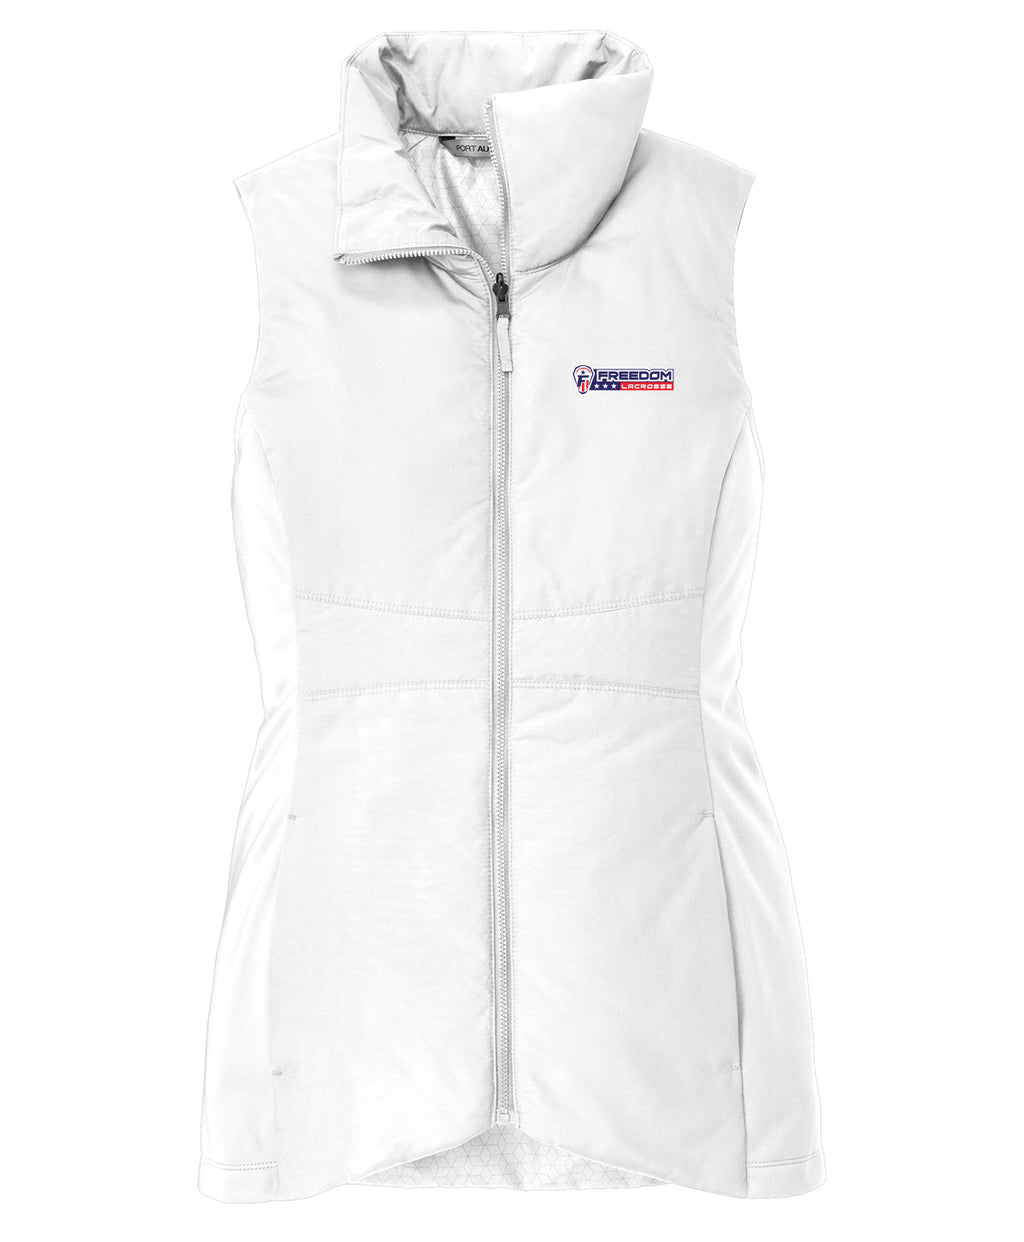 Freedom Lacrosse Women's White Vest